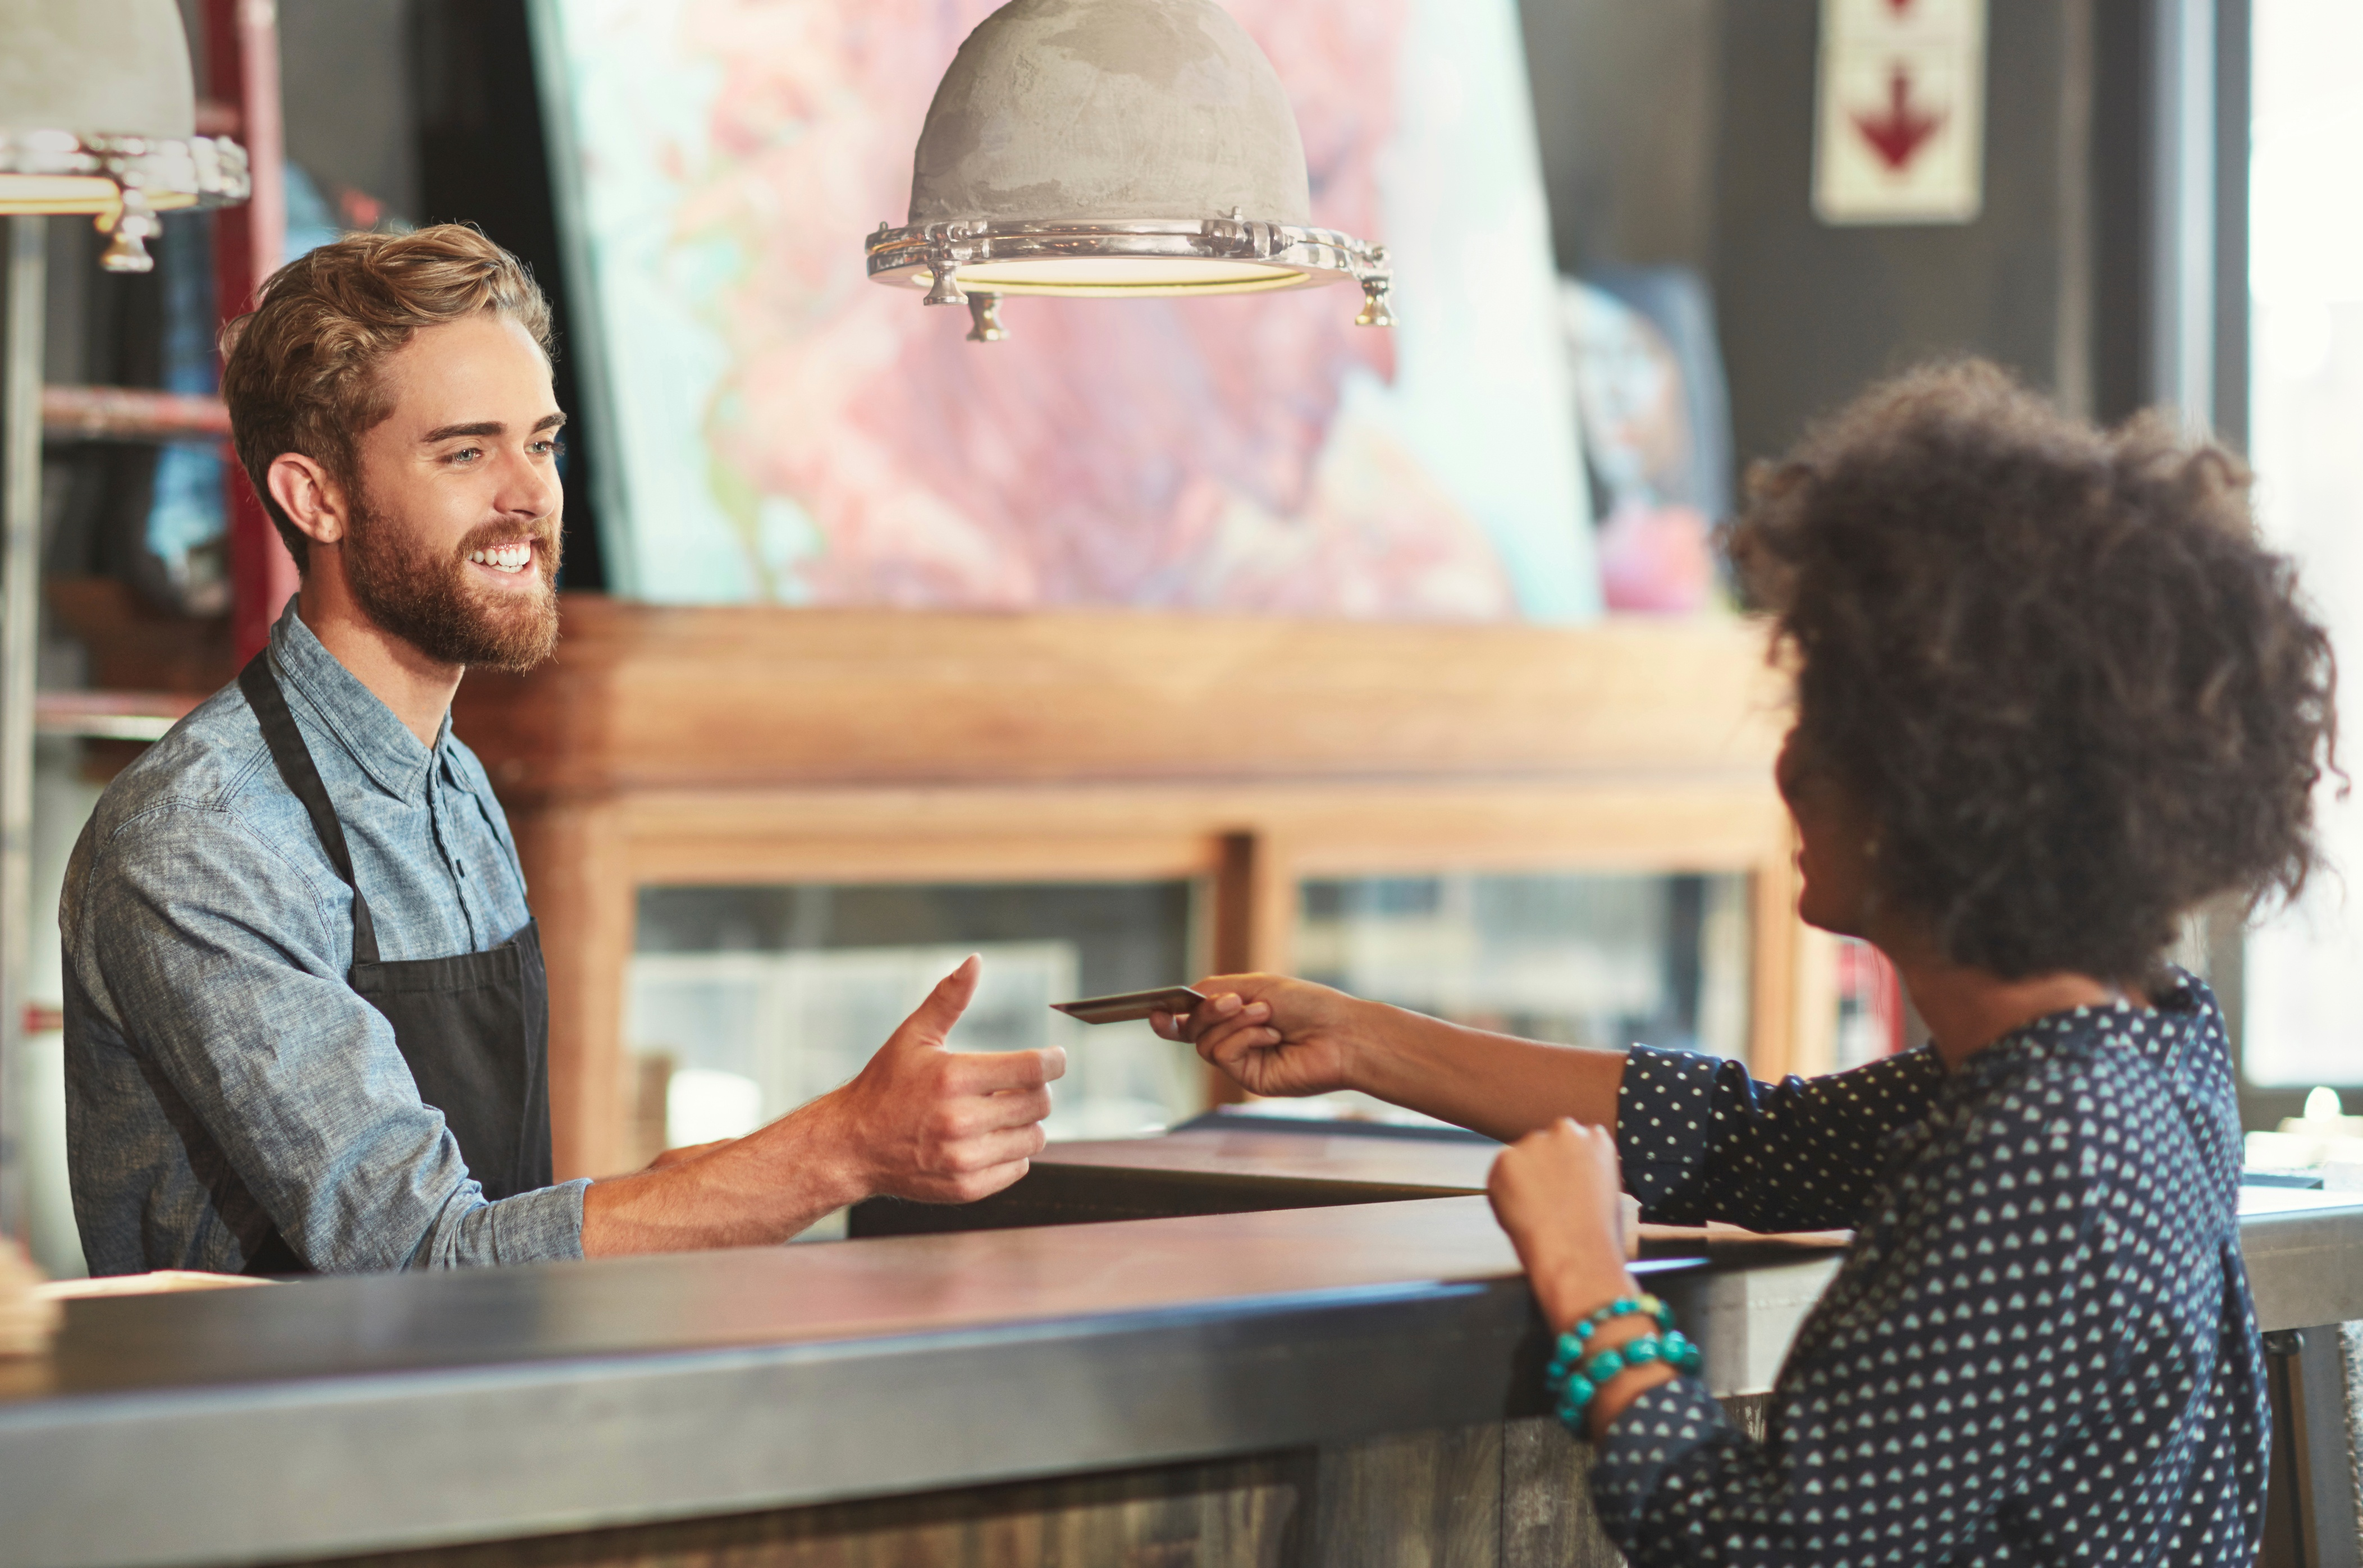 Ghost Restaurants and Mobile Payments the Big Restaurant Trends in 2019